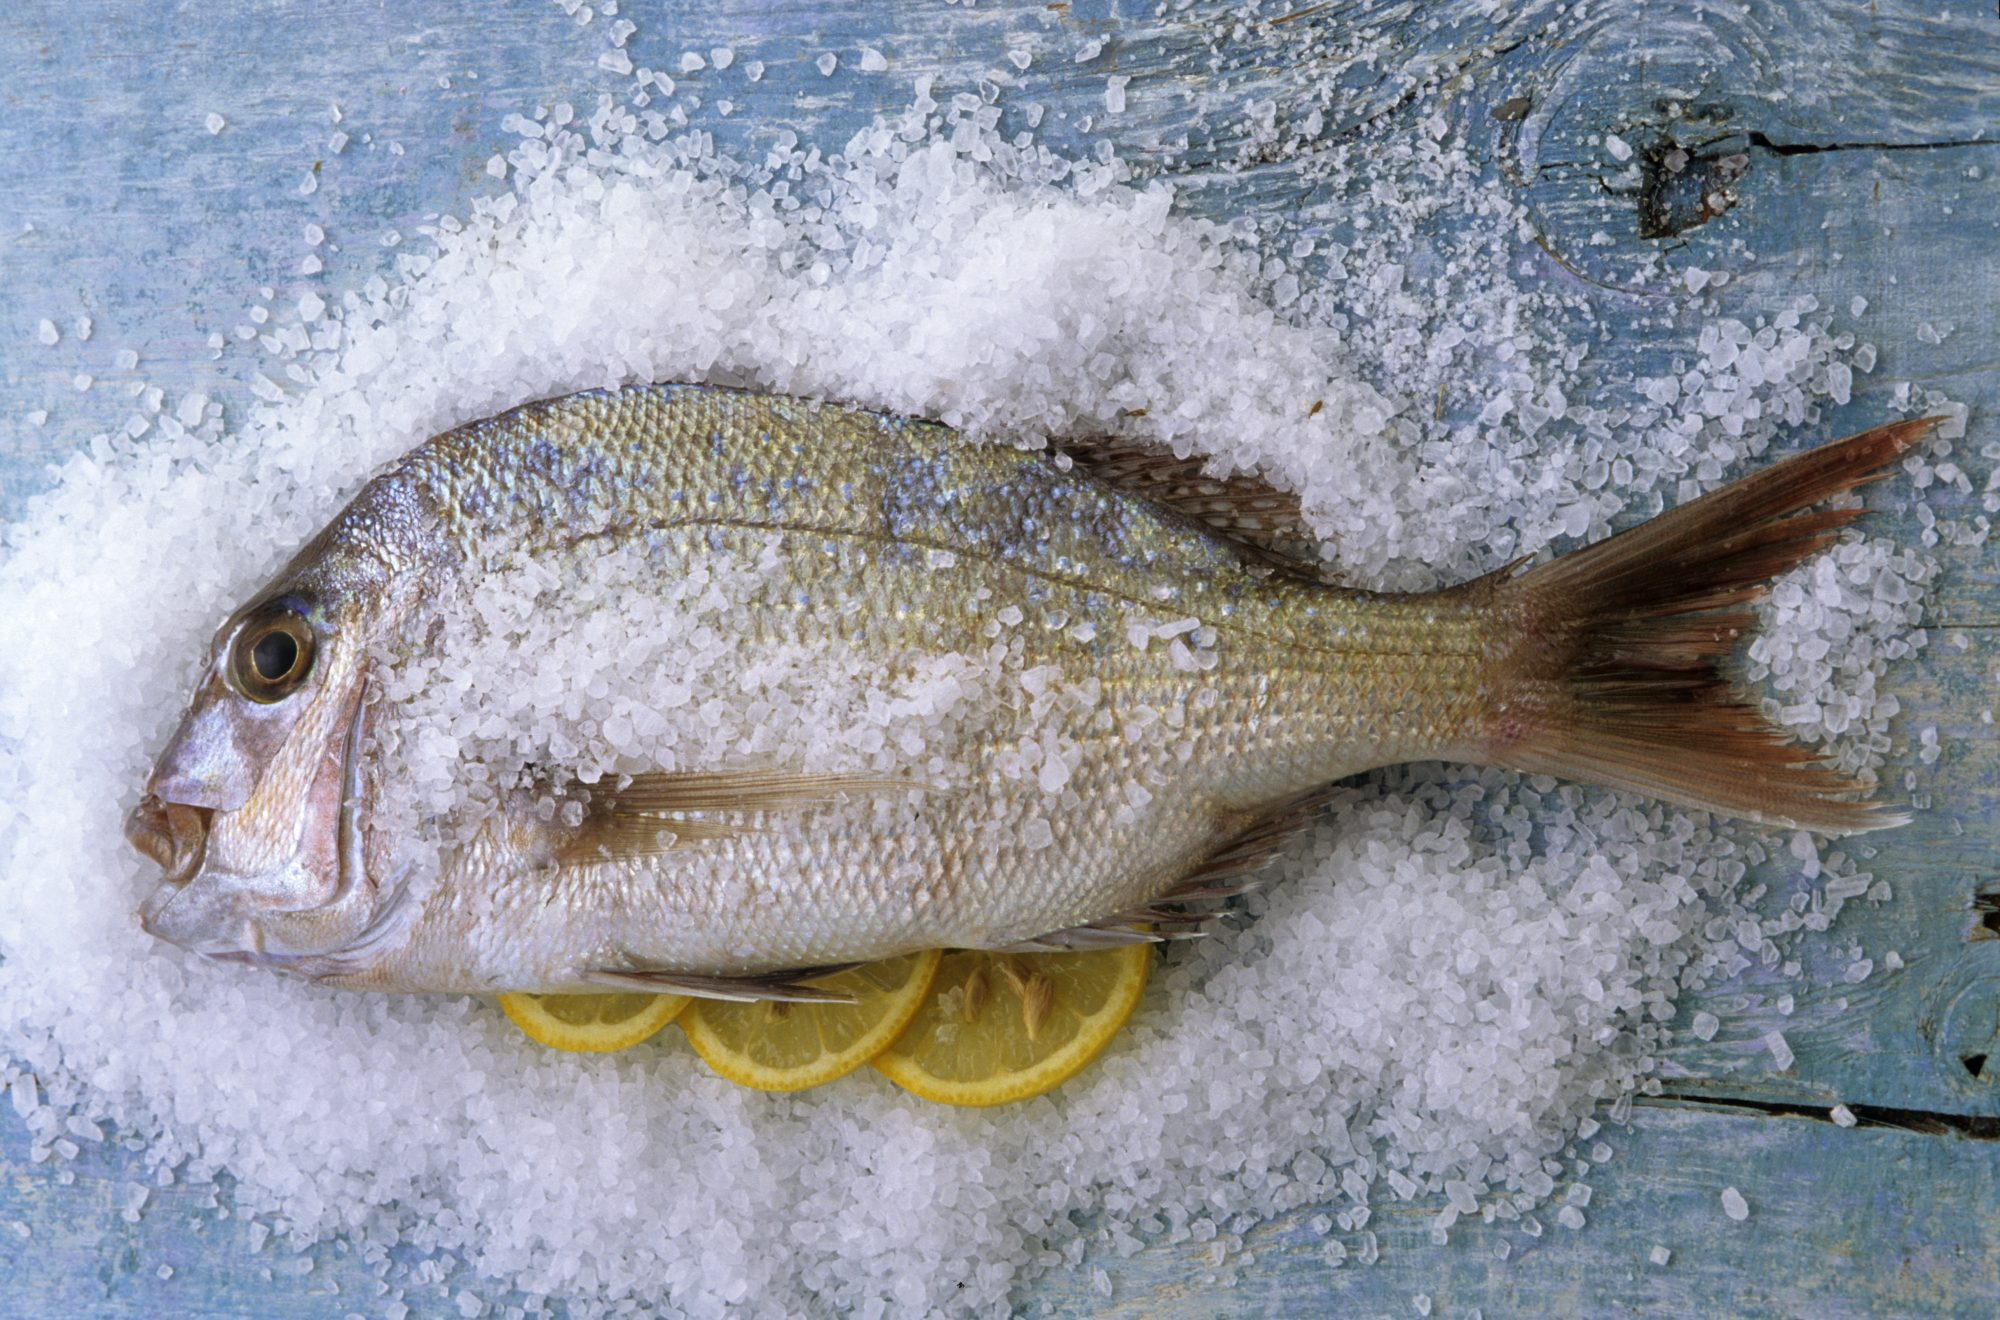 easy-prevent-iodine-fish-salt